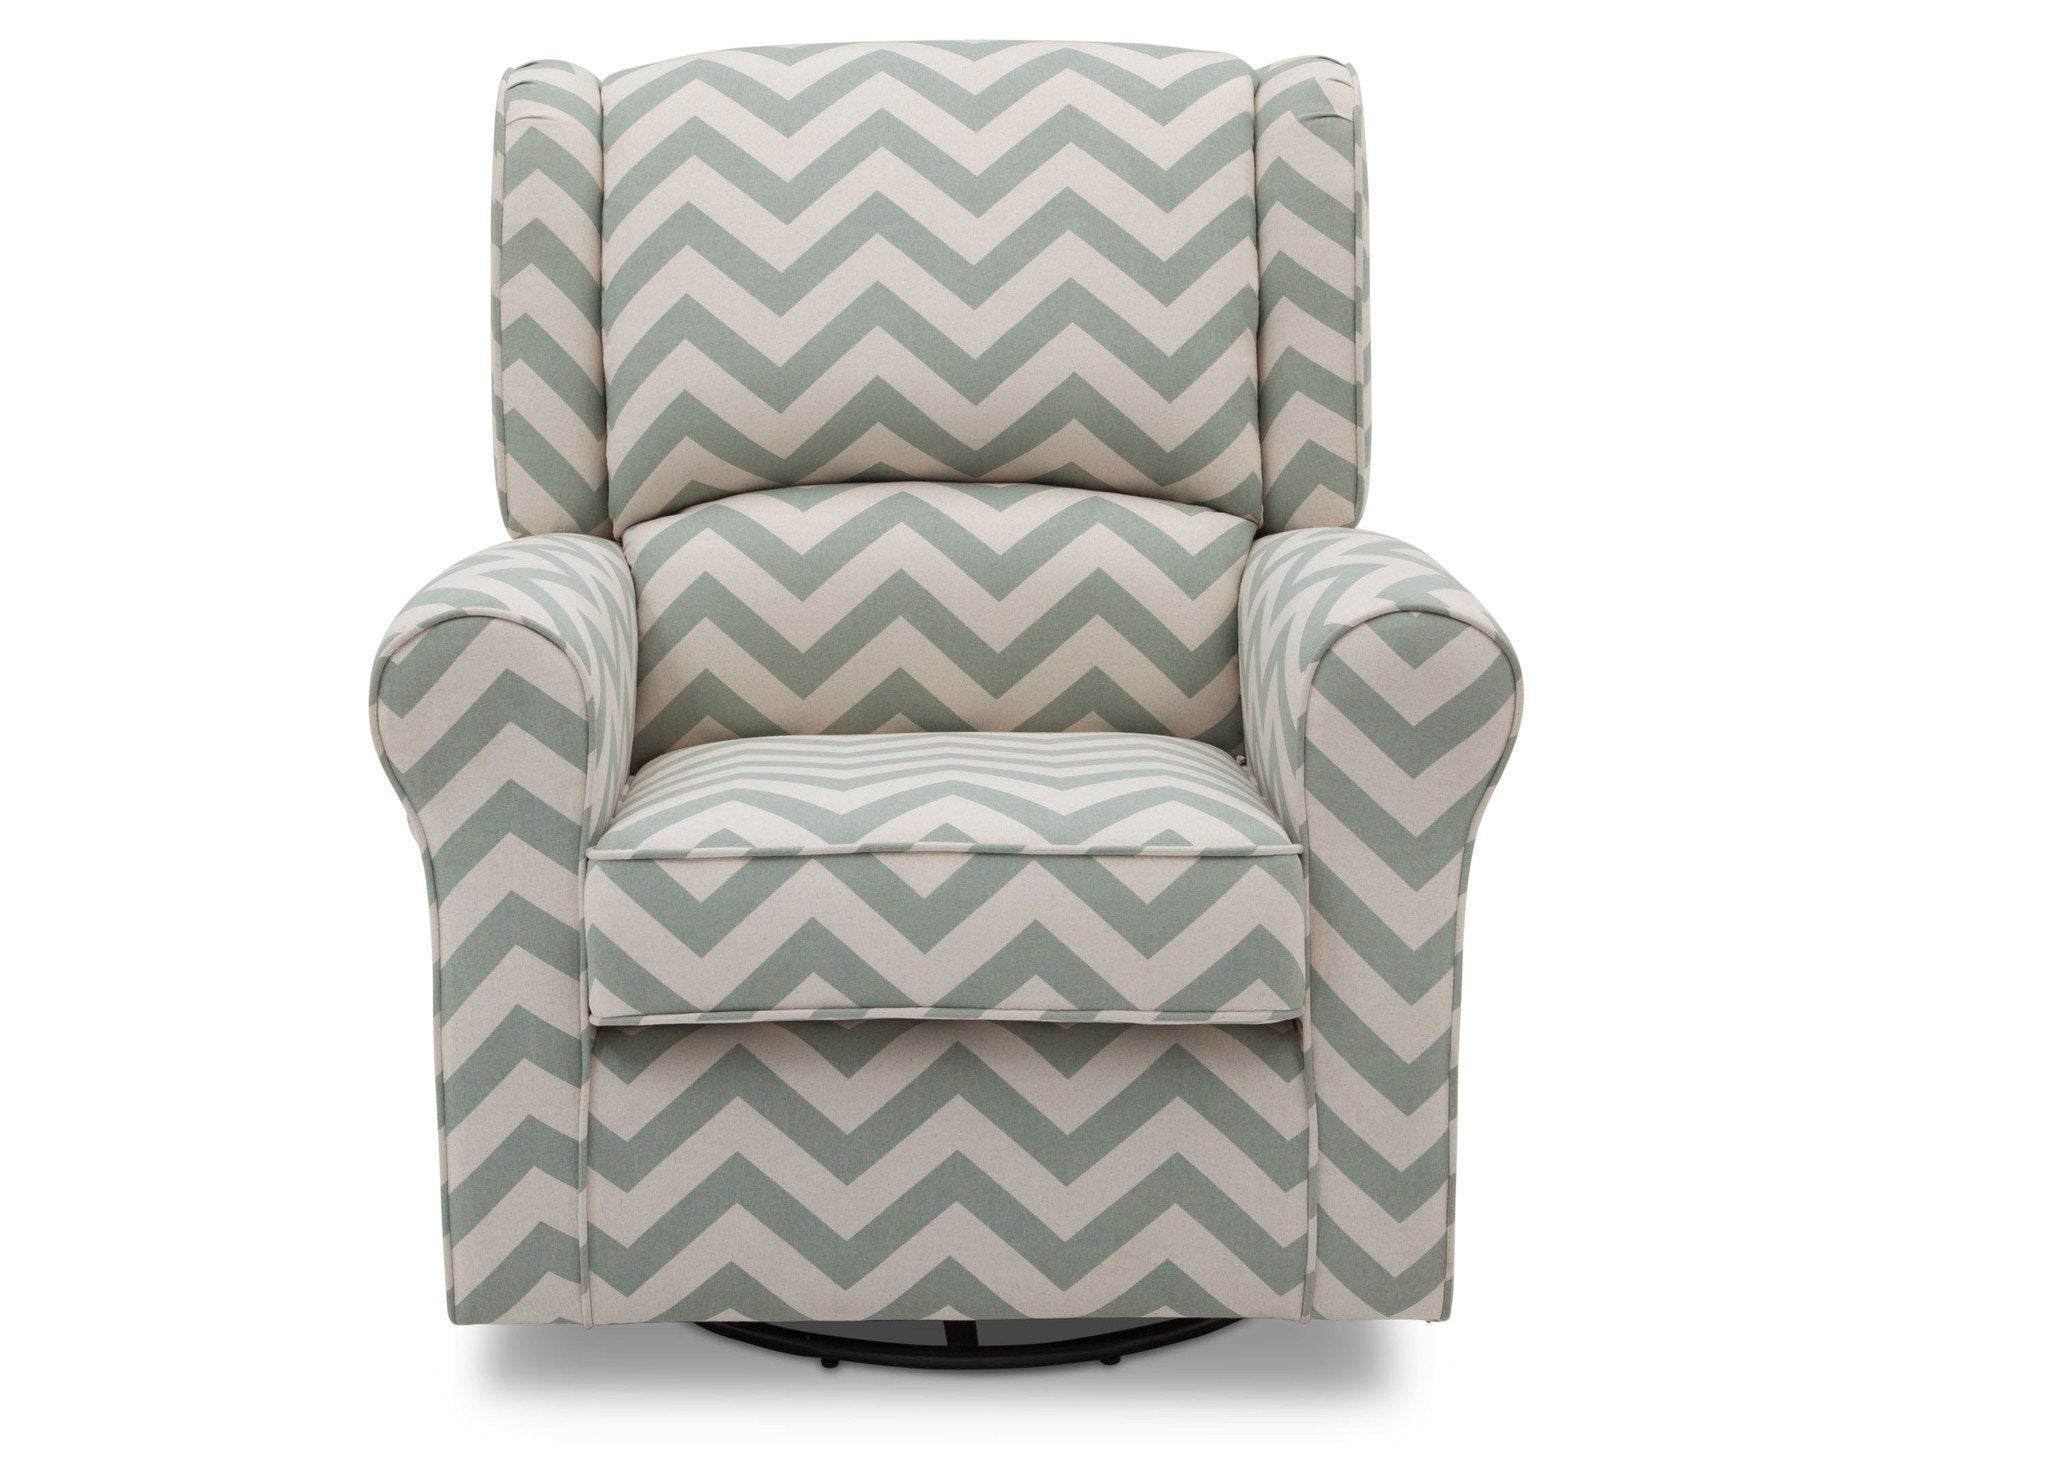 Delta Children Morgan Sage Chevron (316) Glider Front View b2b